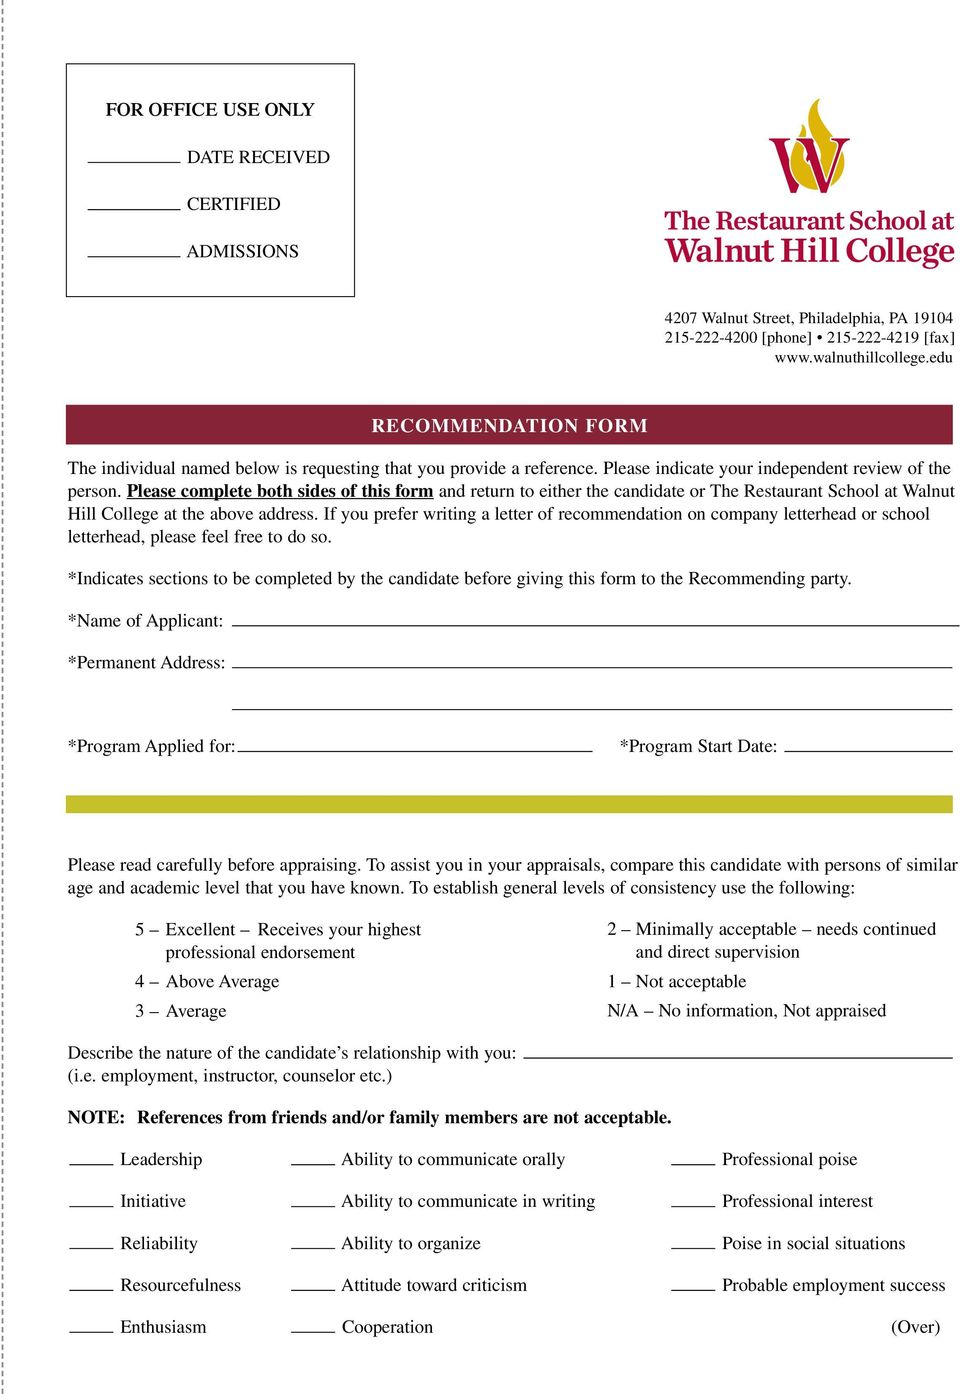 Please complete both sides of this form and return to either the candidate or The Restaurant School at Walnut Hill College at the above address.